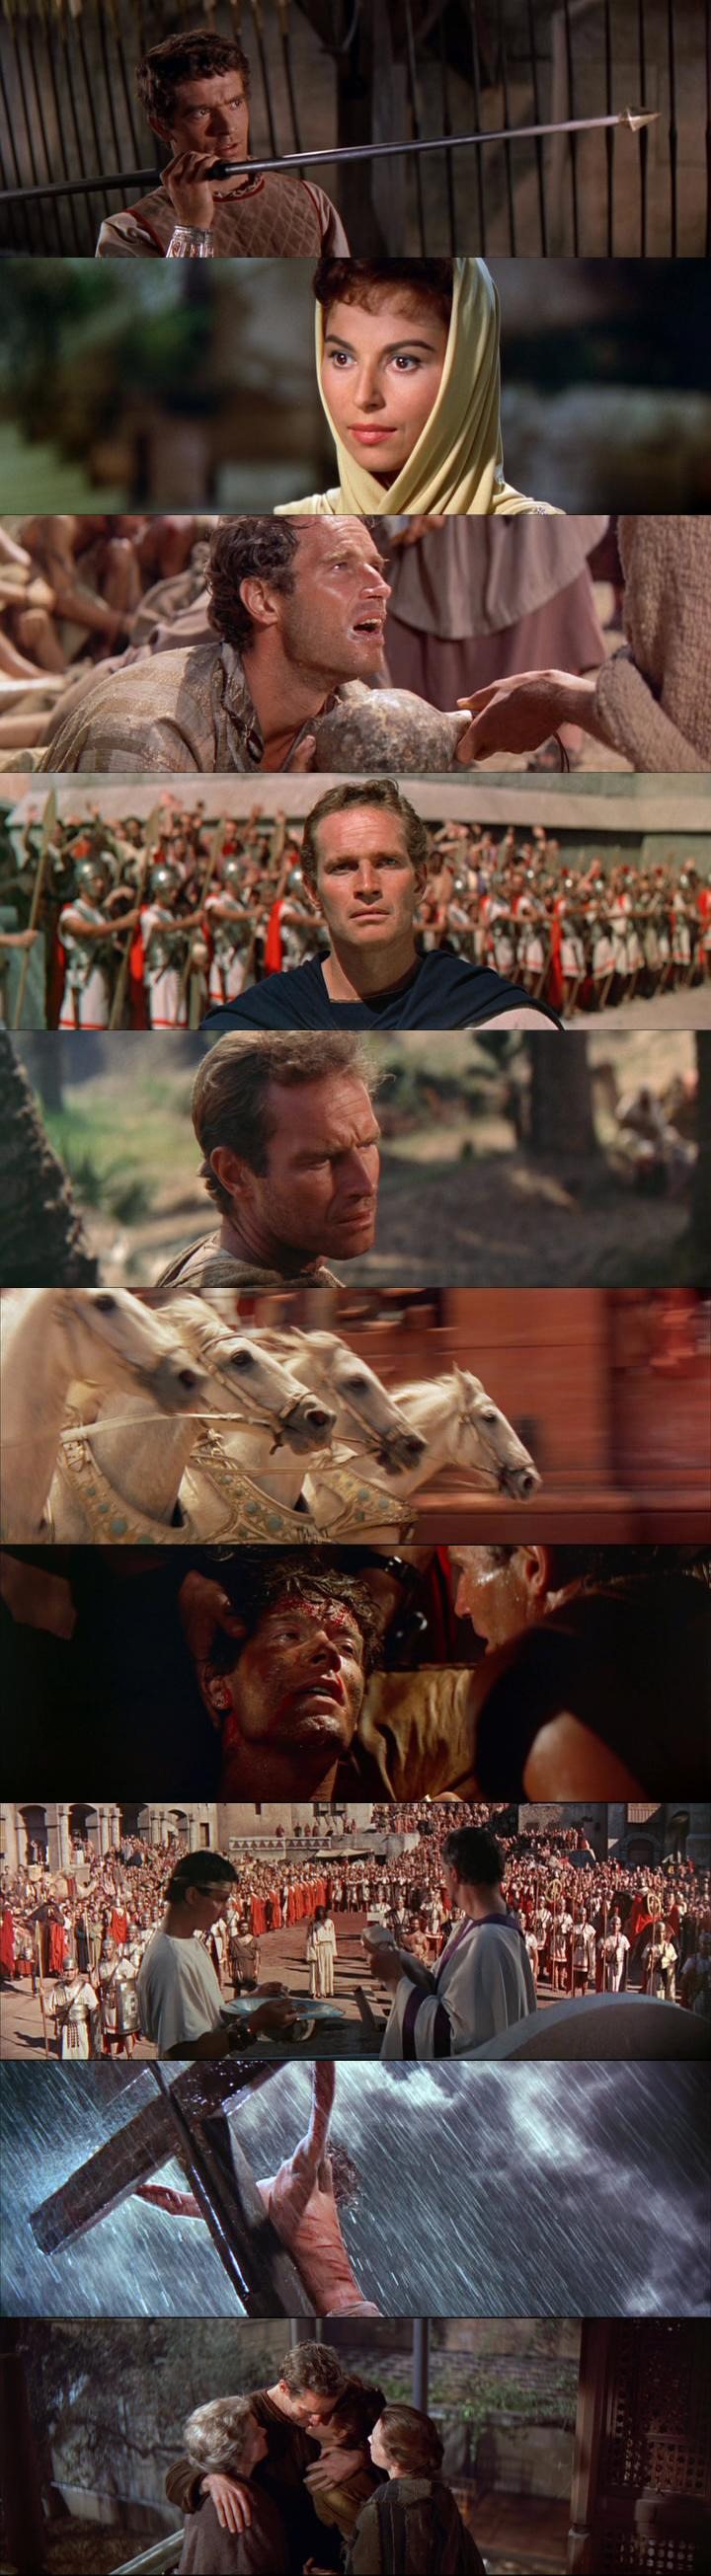 http://watershade.net/public/ben-hur-1959.jpg